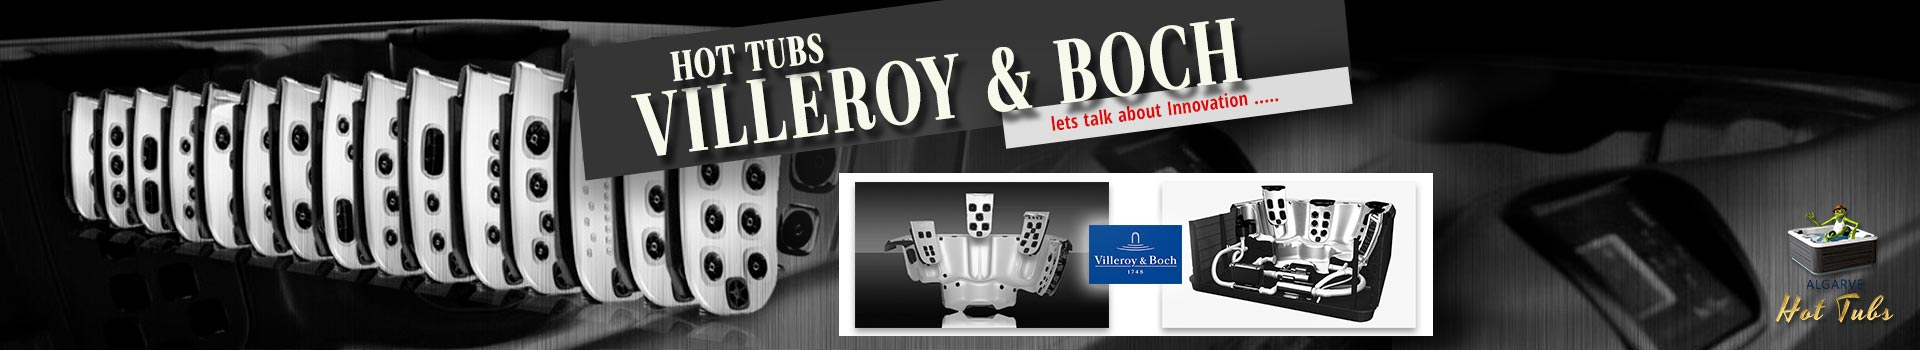 Hottubs - Villeroy & Boch Series - Wellness Dreams Algarve